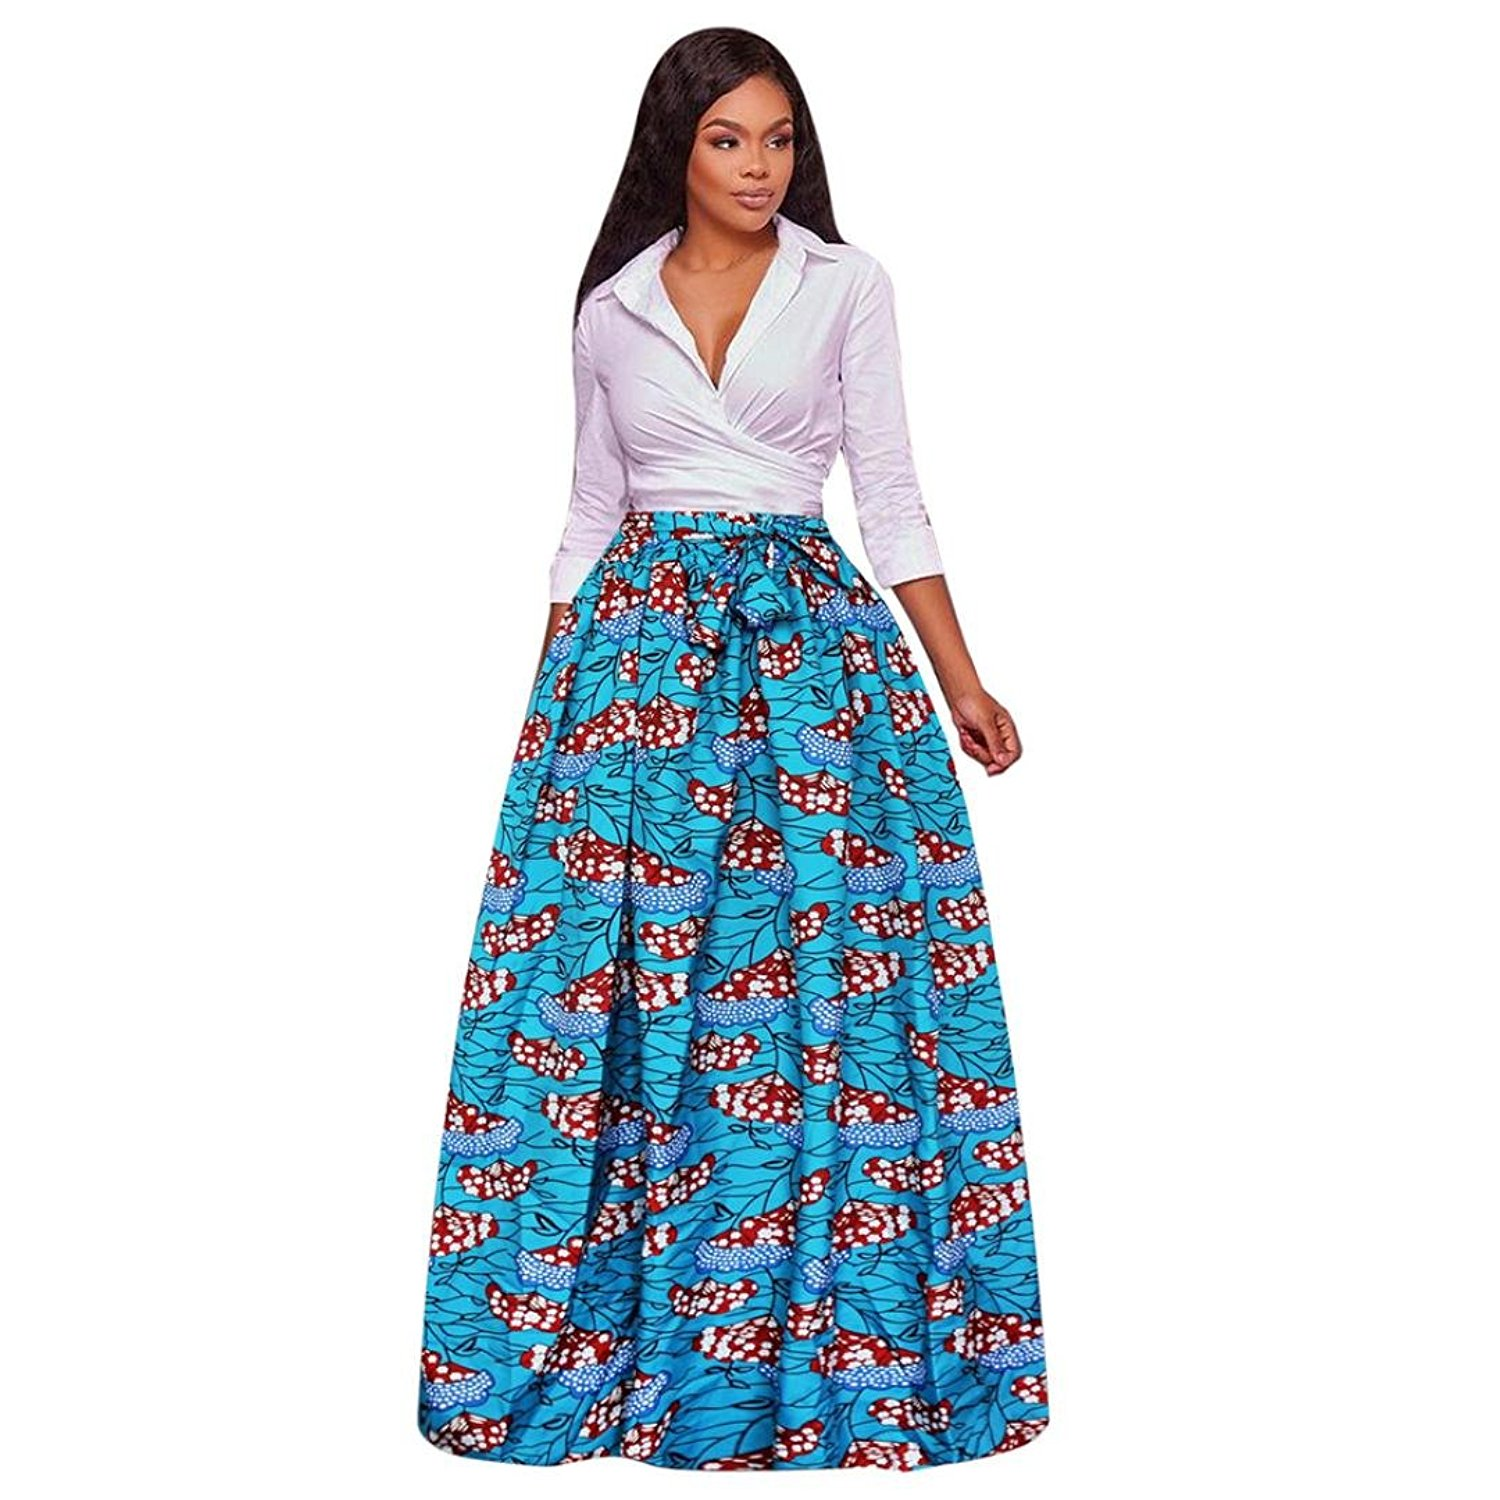 dfe8302bb95 Get Quotations · Aurorax Women s High Waisted Skirt Front Slit Belted Maxi  Skirt with Pockets